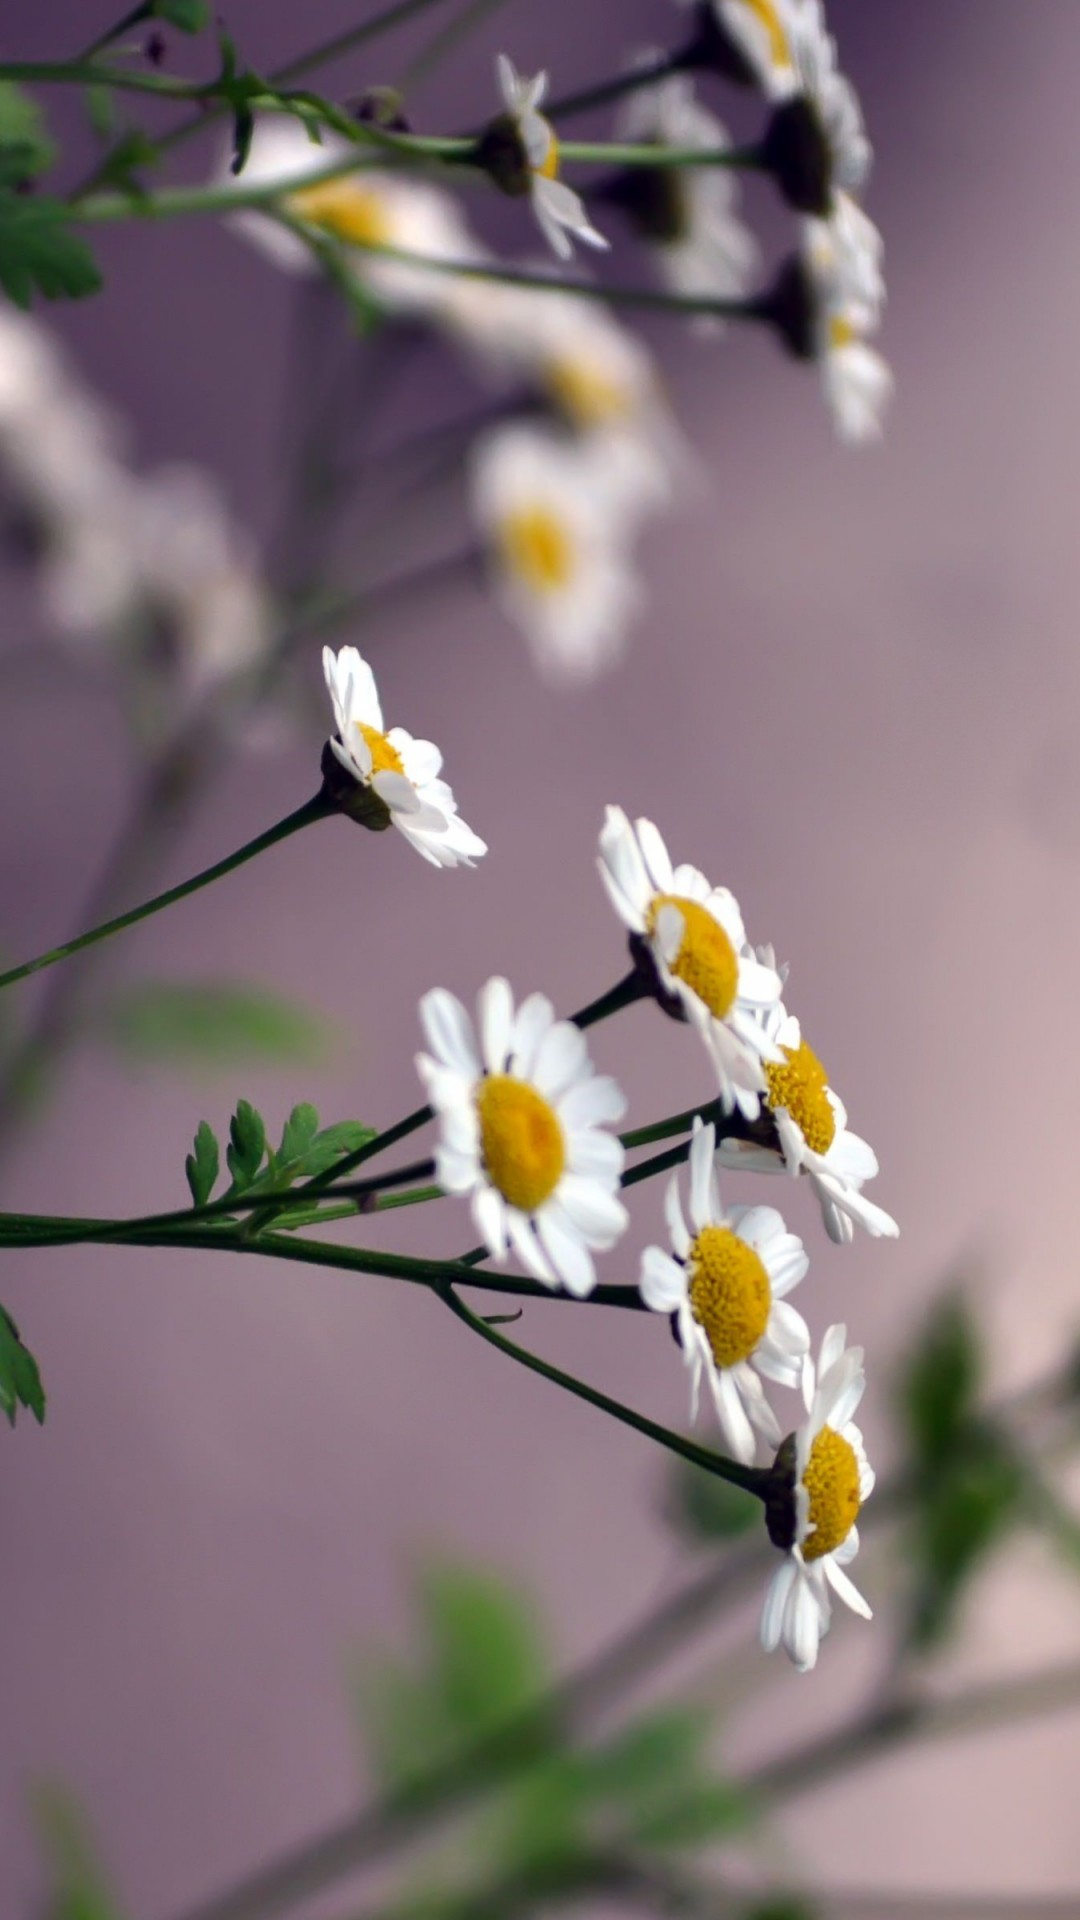 Daisy Flowers Wallpaper for LG G2